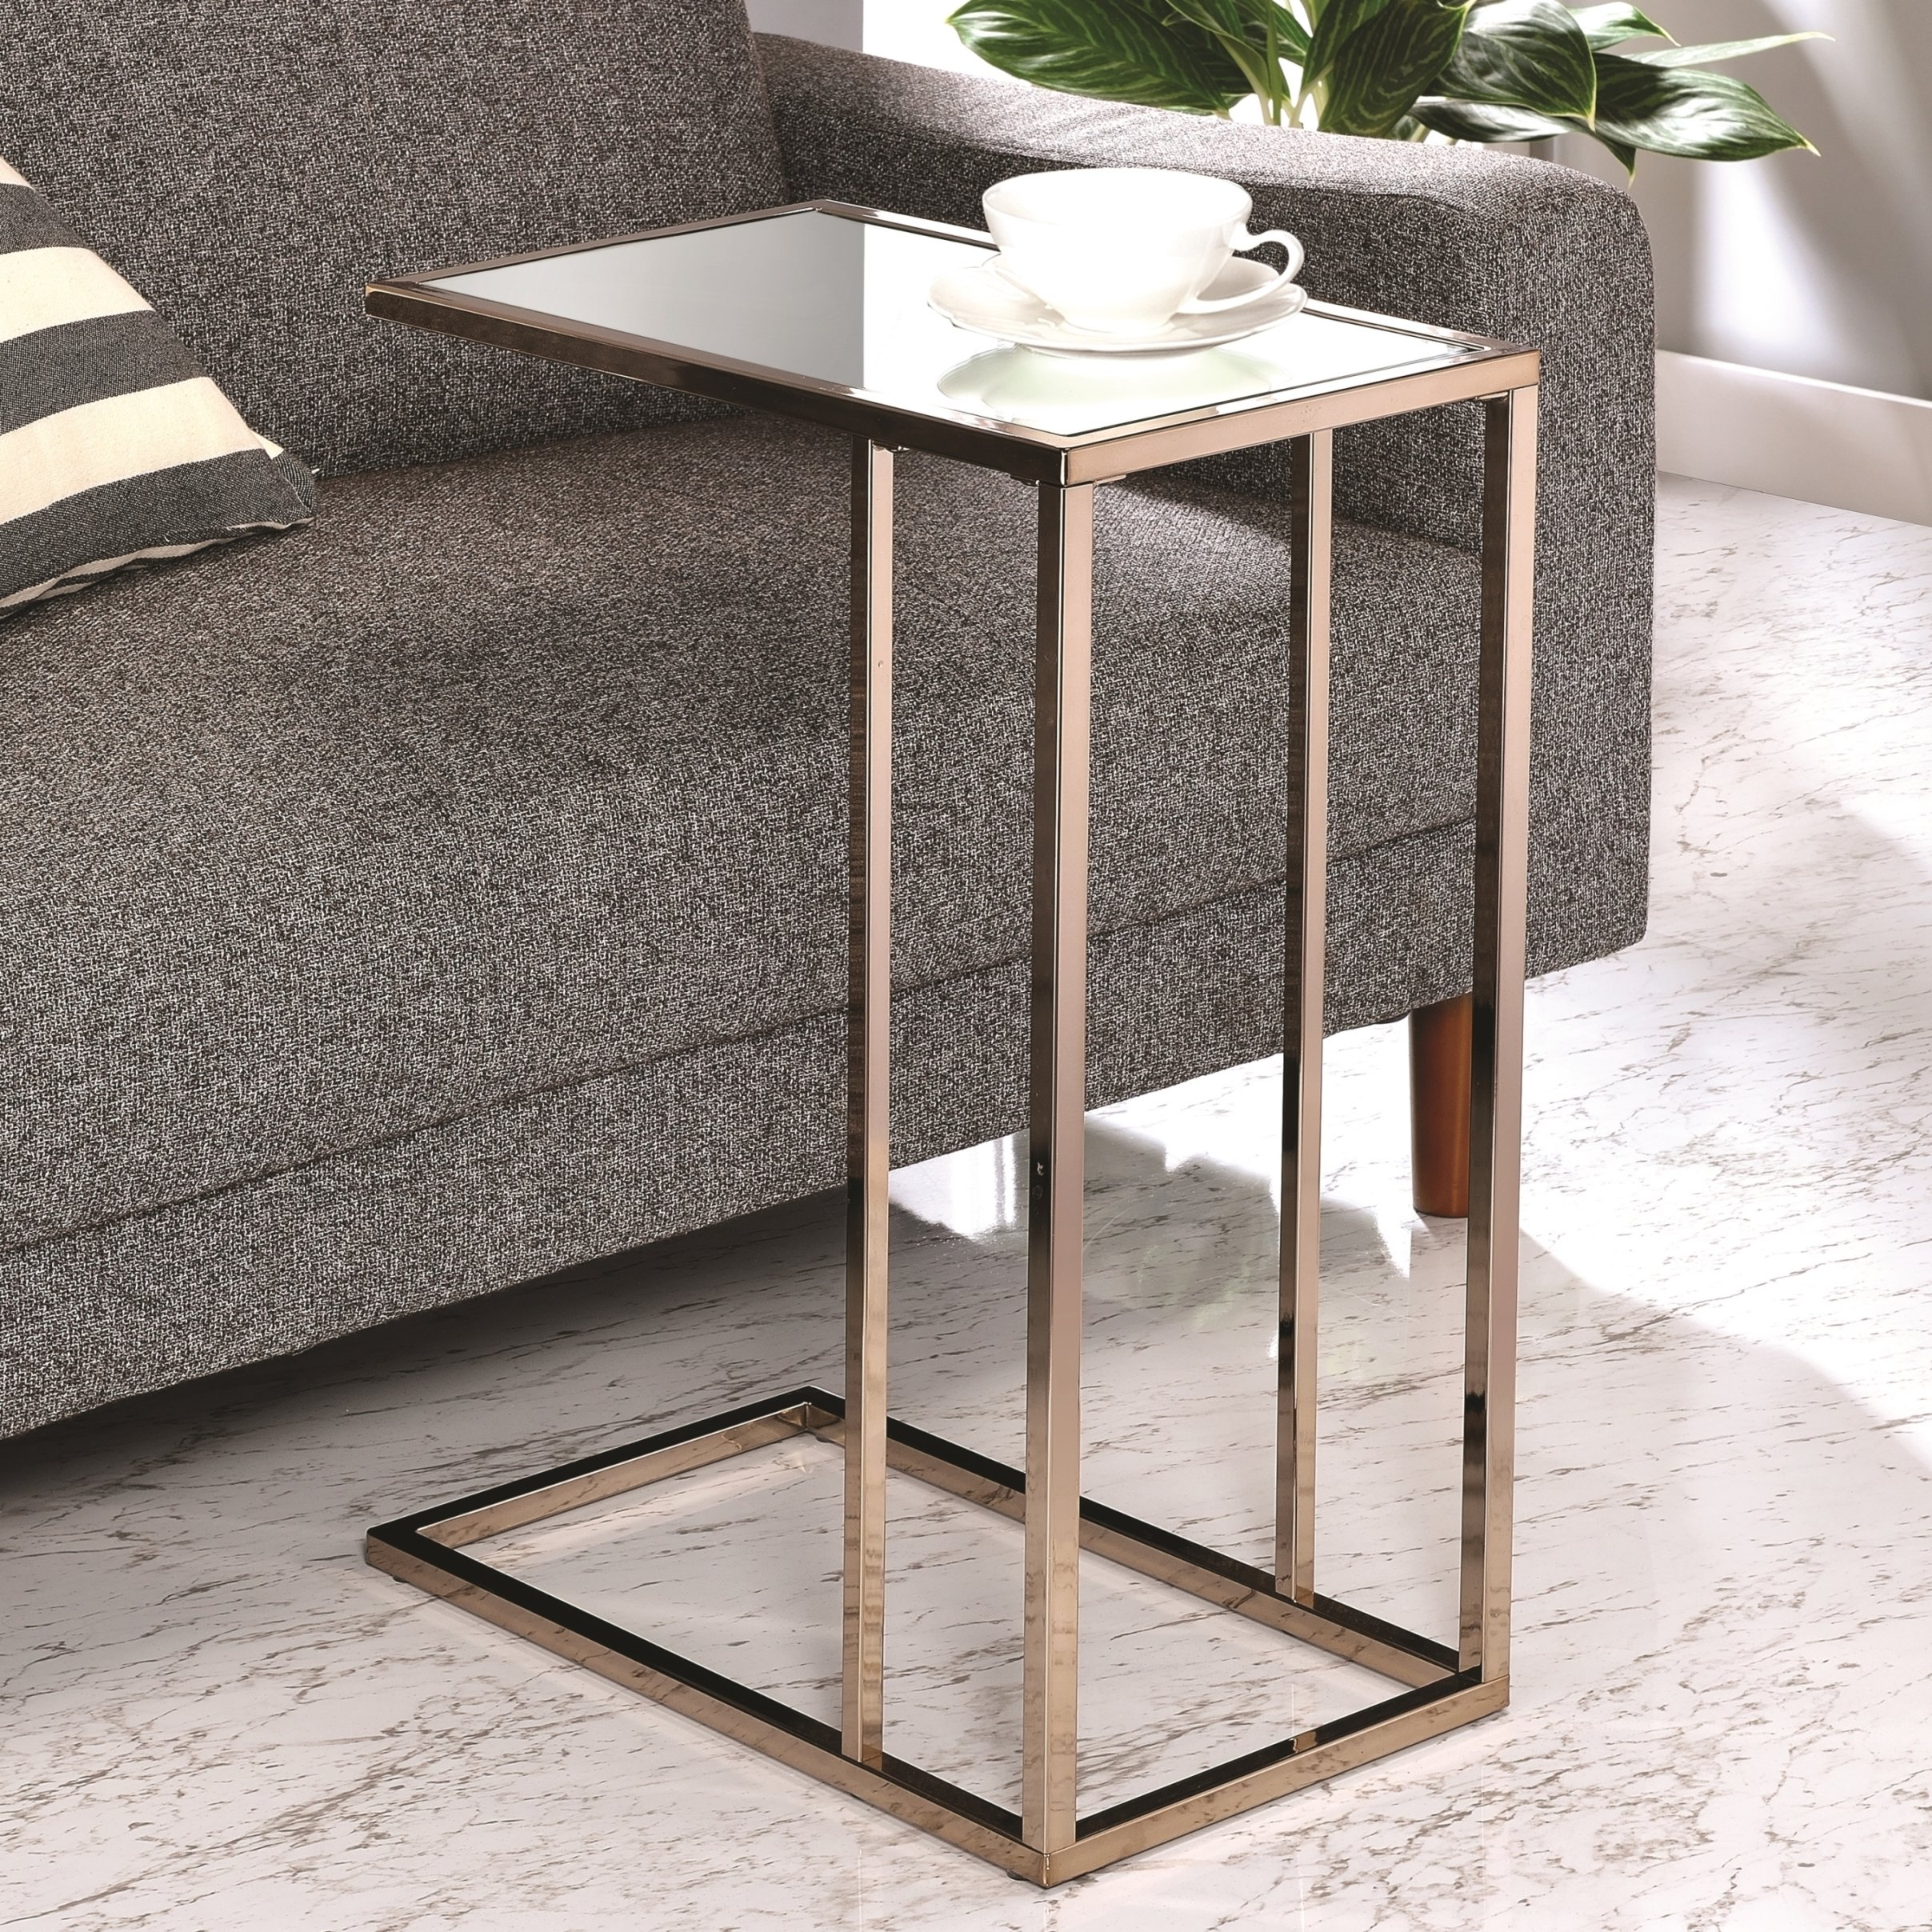 modern design chocolate chrome living room accent table with tempered mirrored glass top drawer free shipping today tall console cloth beach floor lamp leg extenders pier one